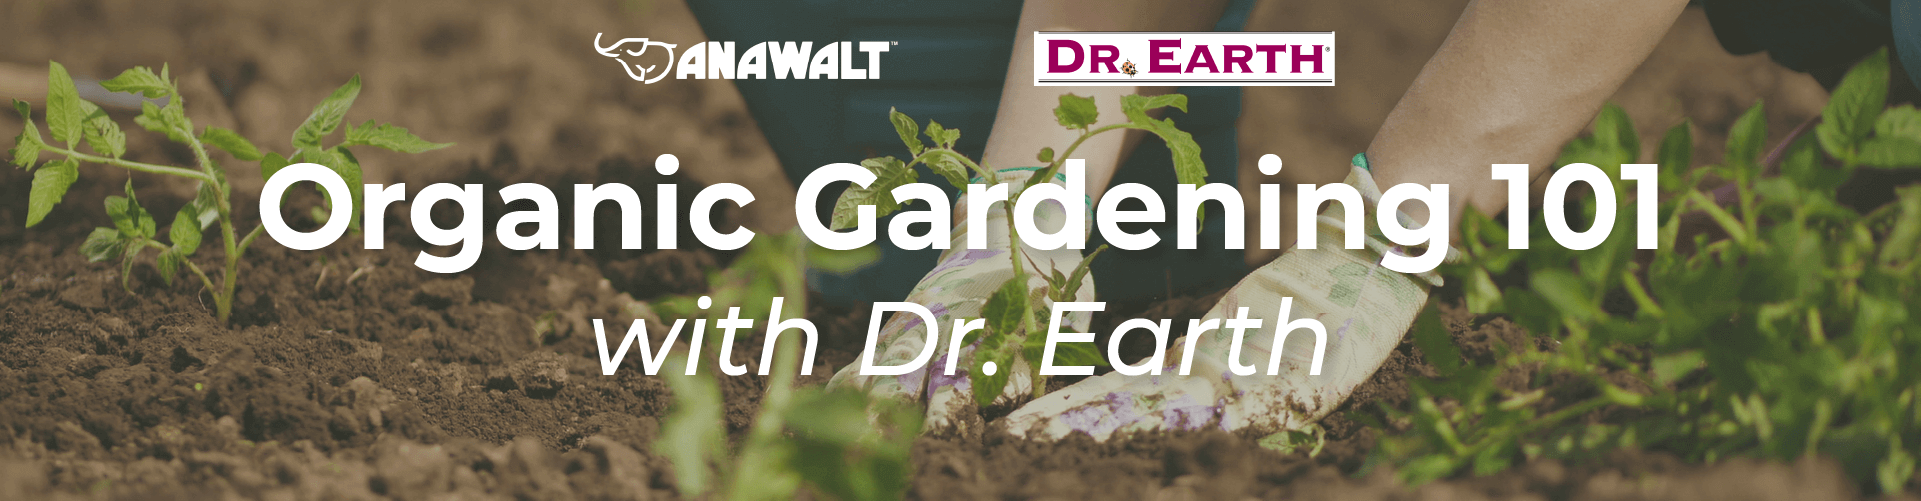 Organic Gardening 101 with Dr. Earth